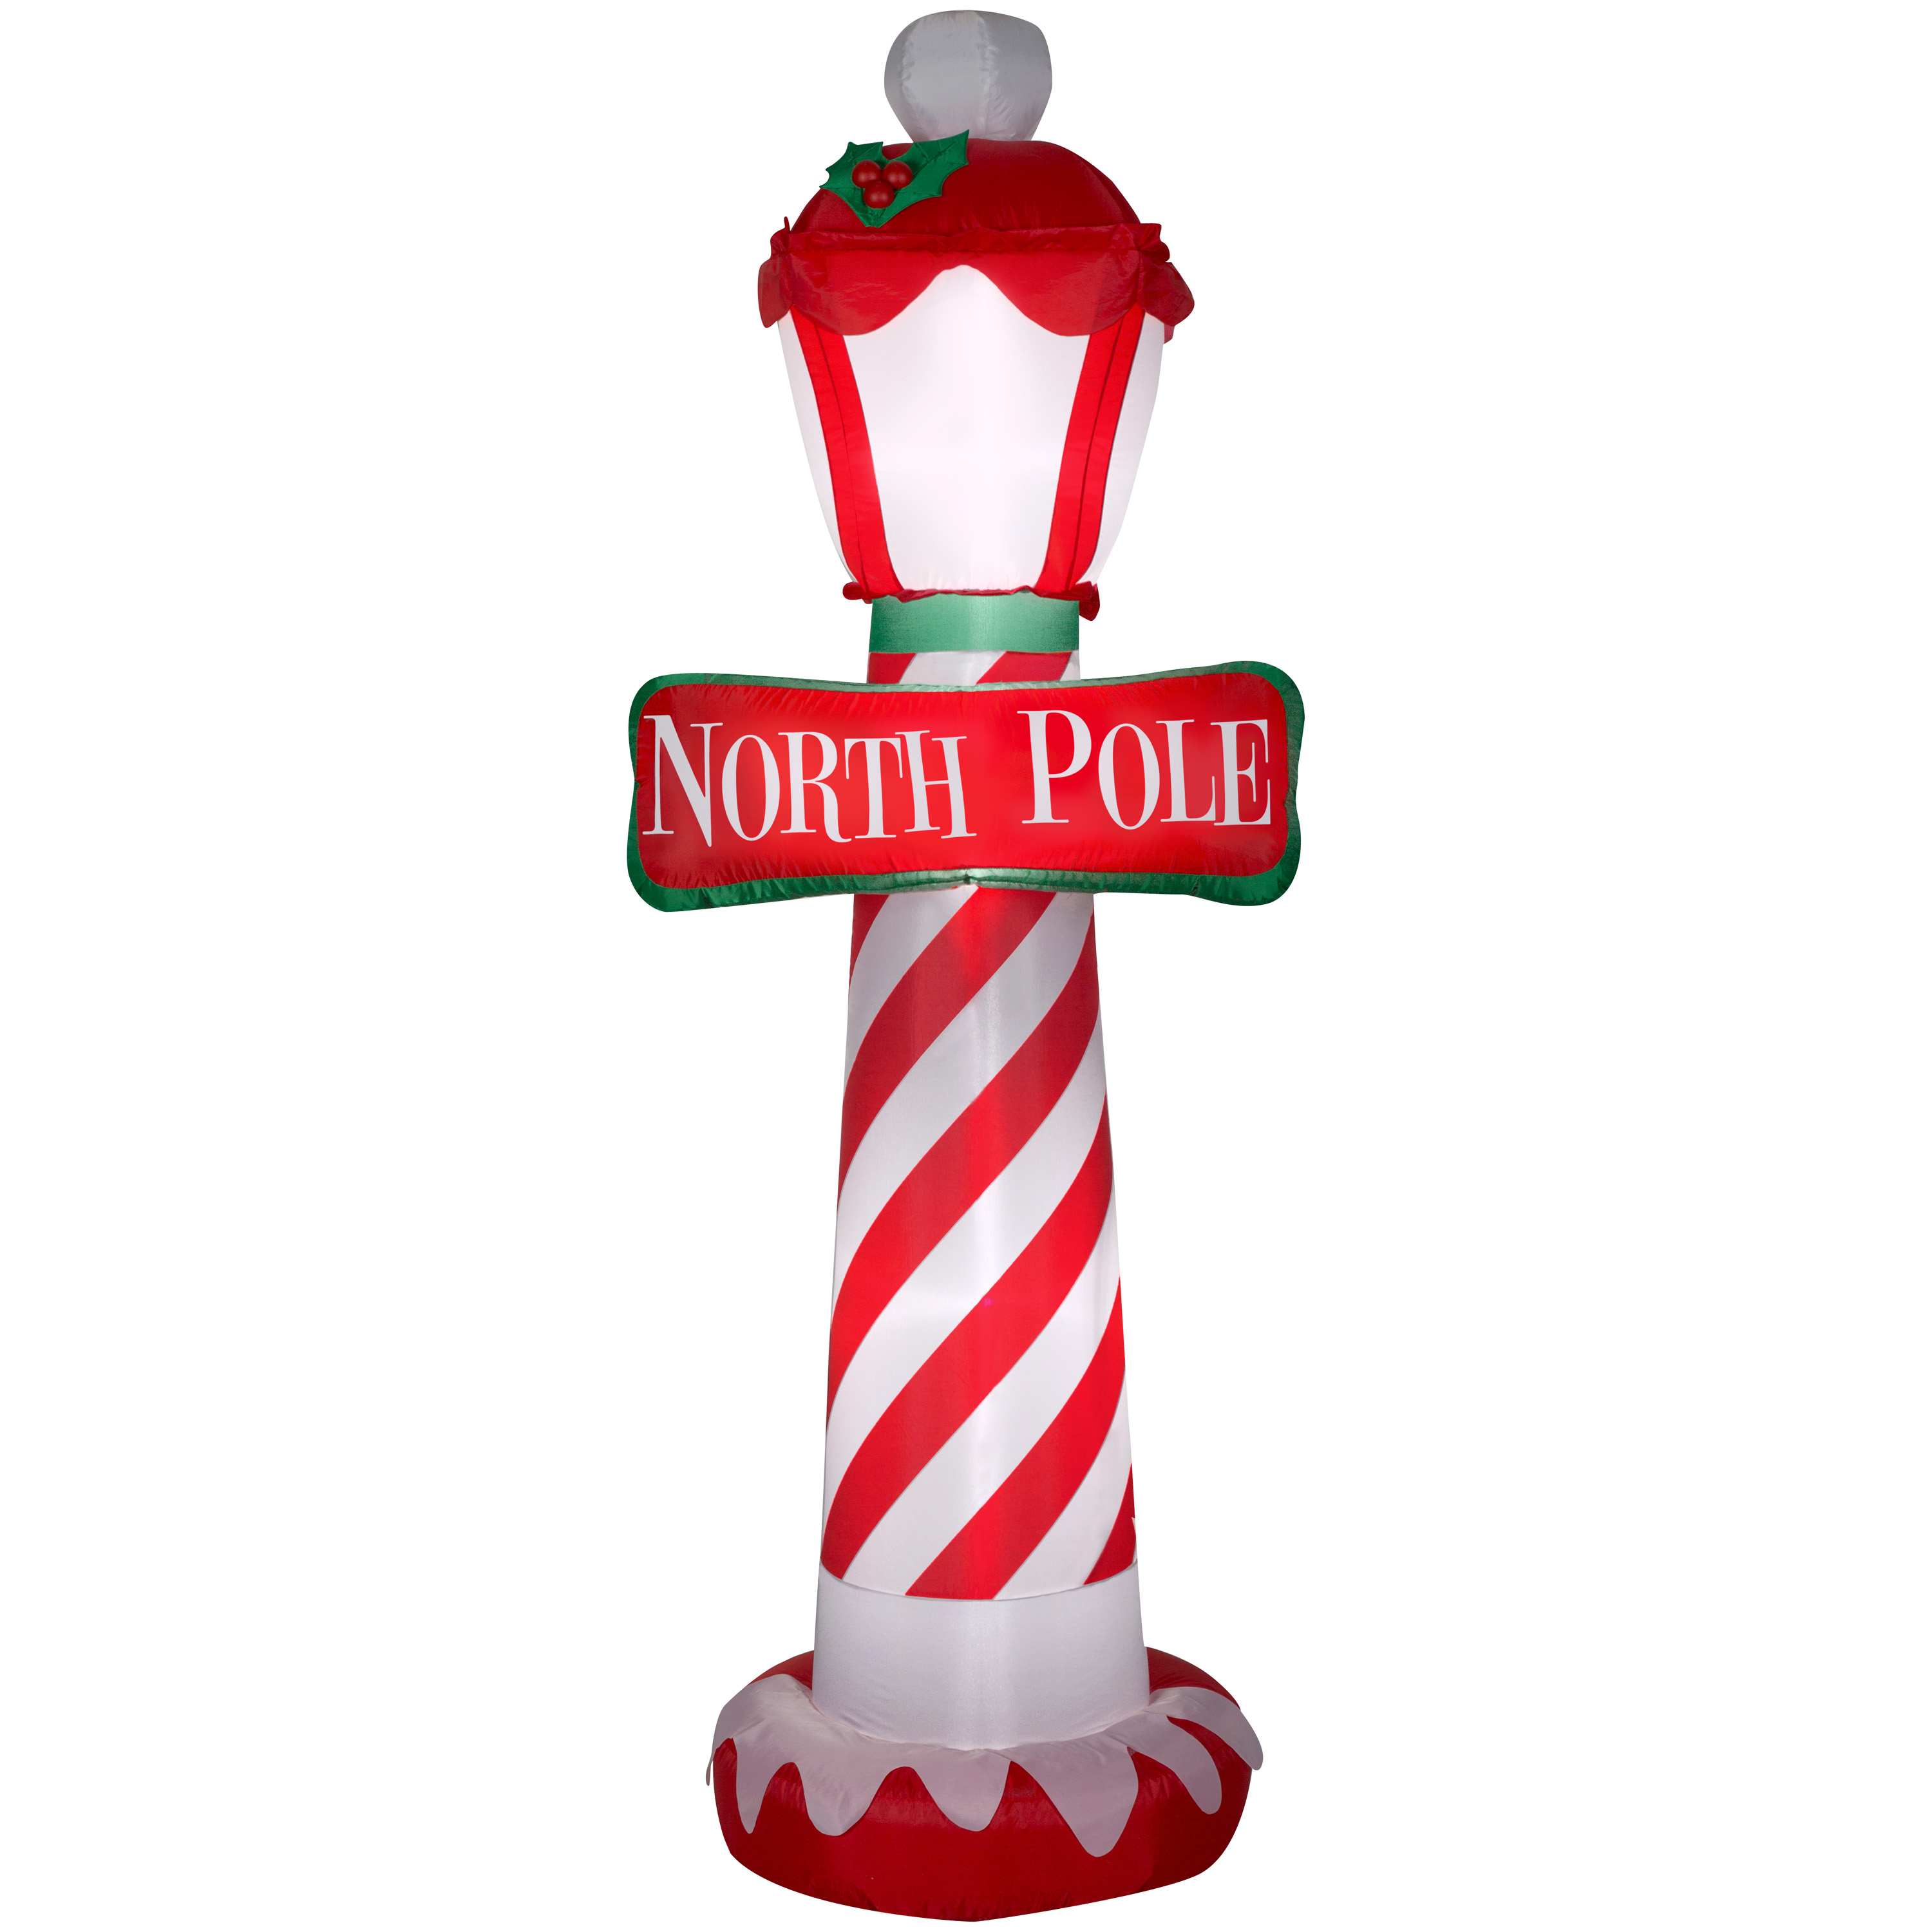 Airblown Inflatable-North Pole 7ft tall by Gemmy Industries